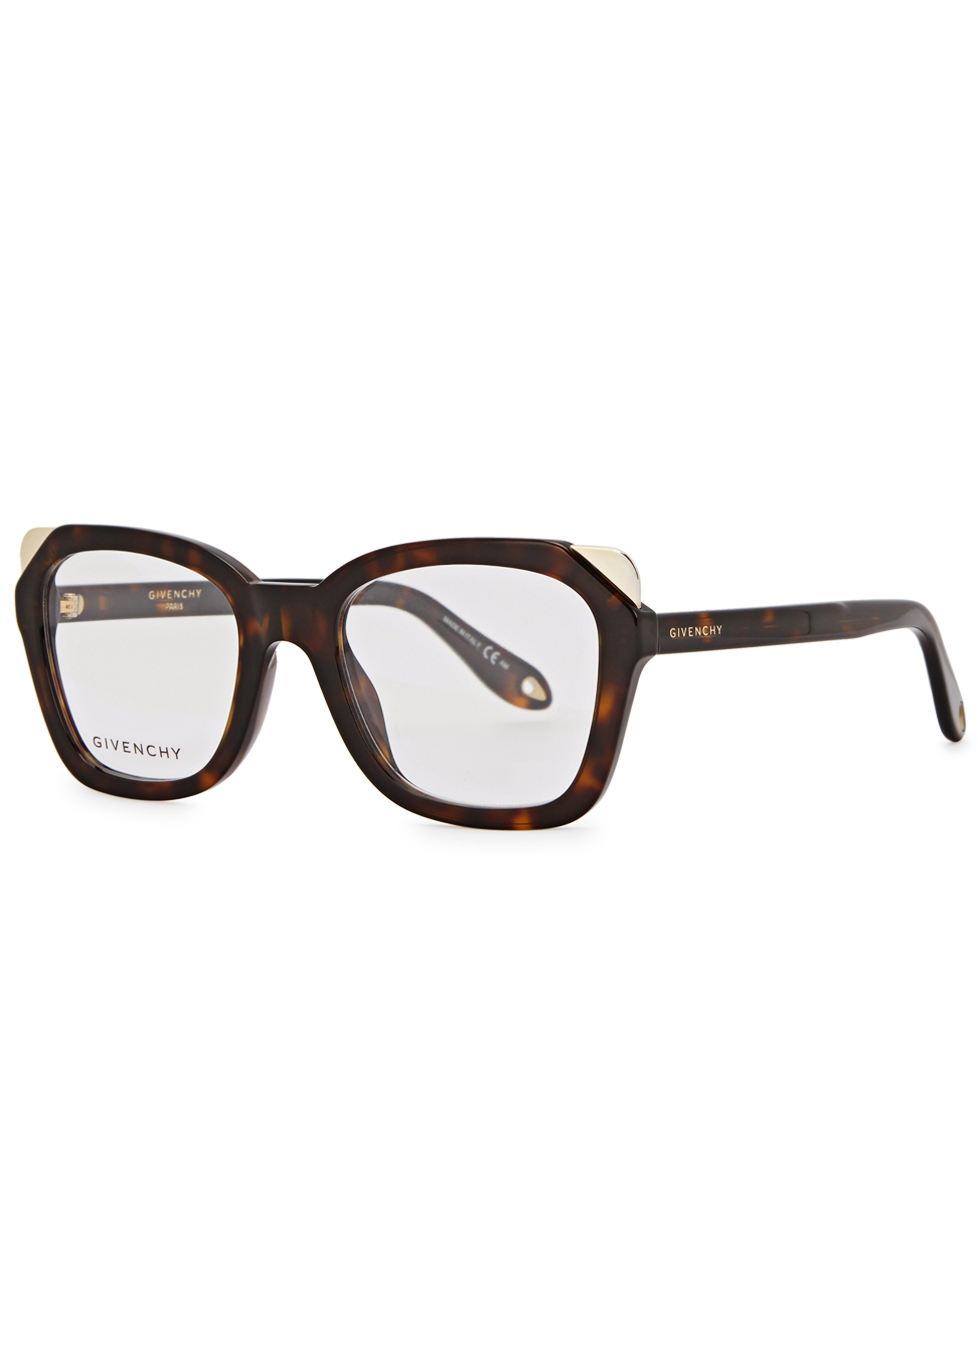 GV 0042 square-frame optical glasses - Givenchy